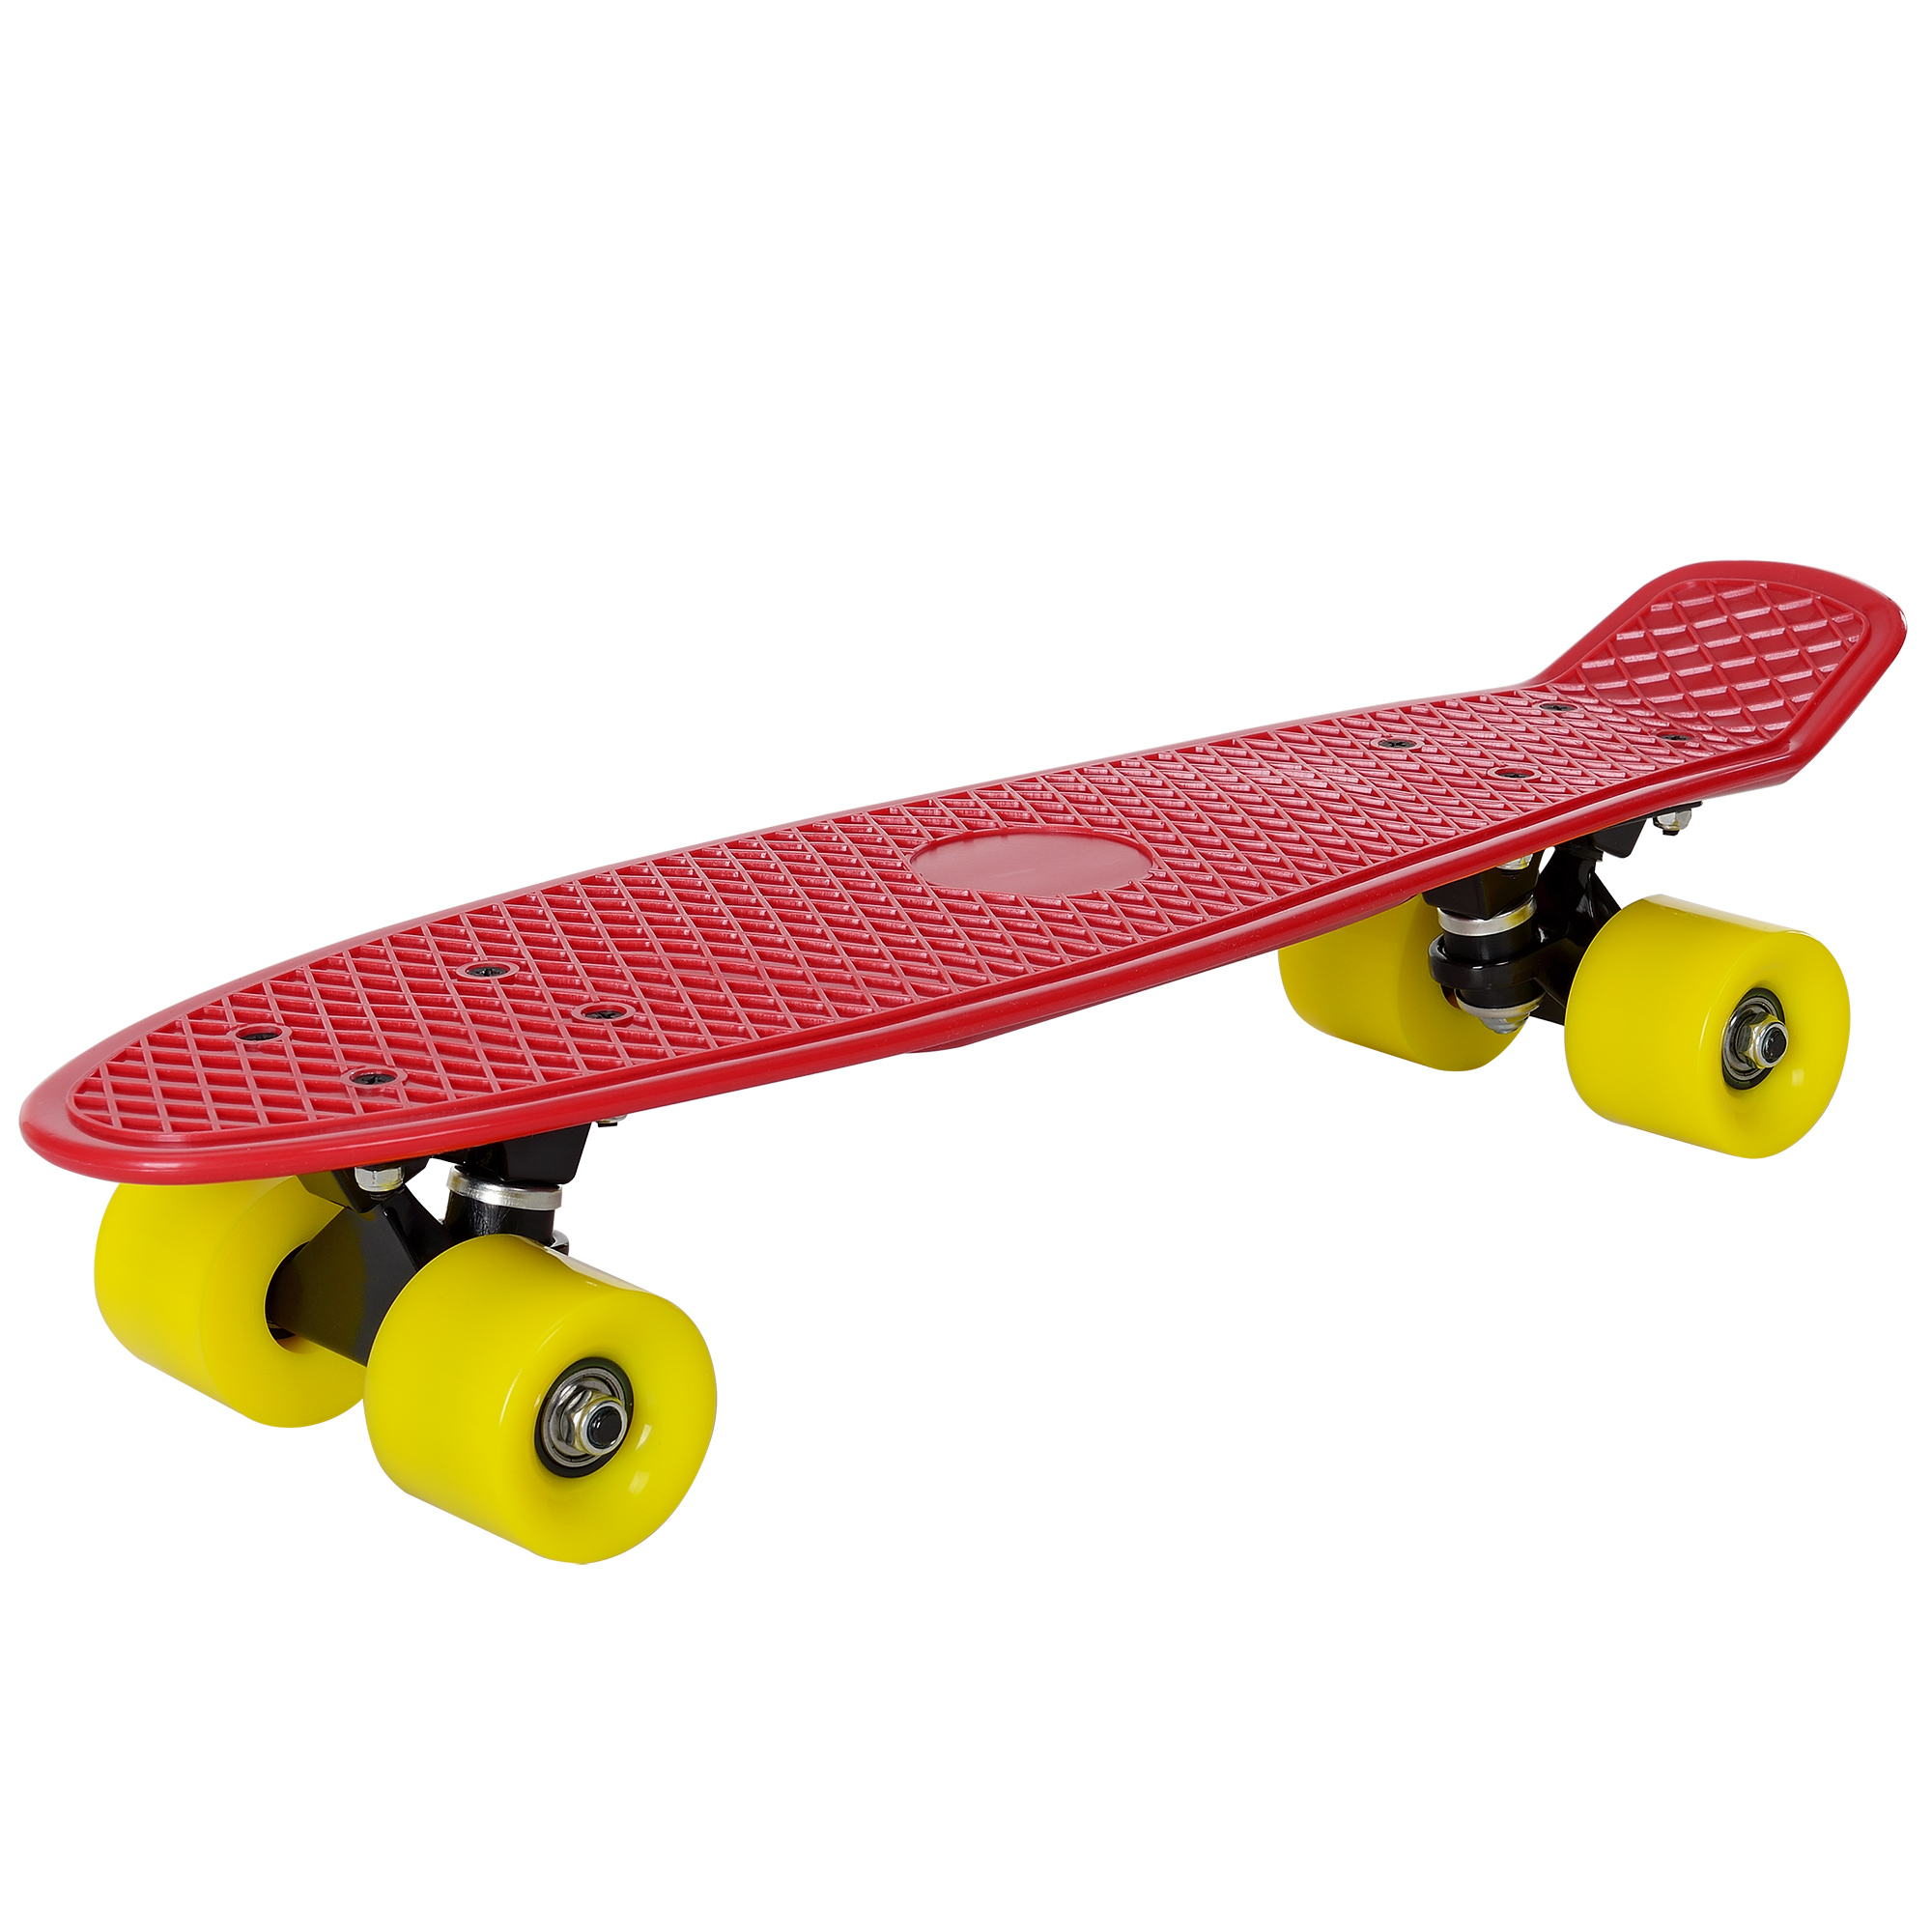 protec longboard retro old skateboard komplett street minicruiser board ebay. Black Bedroom Furniture Sets. Home Design Ideas